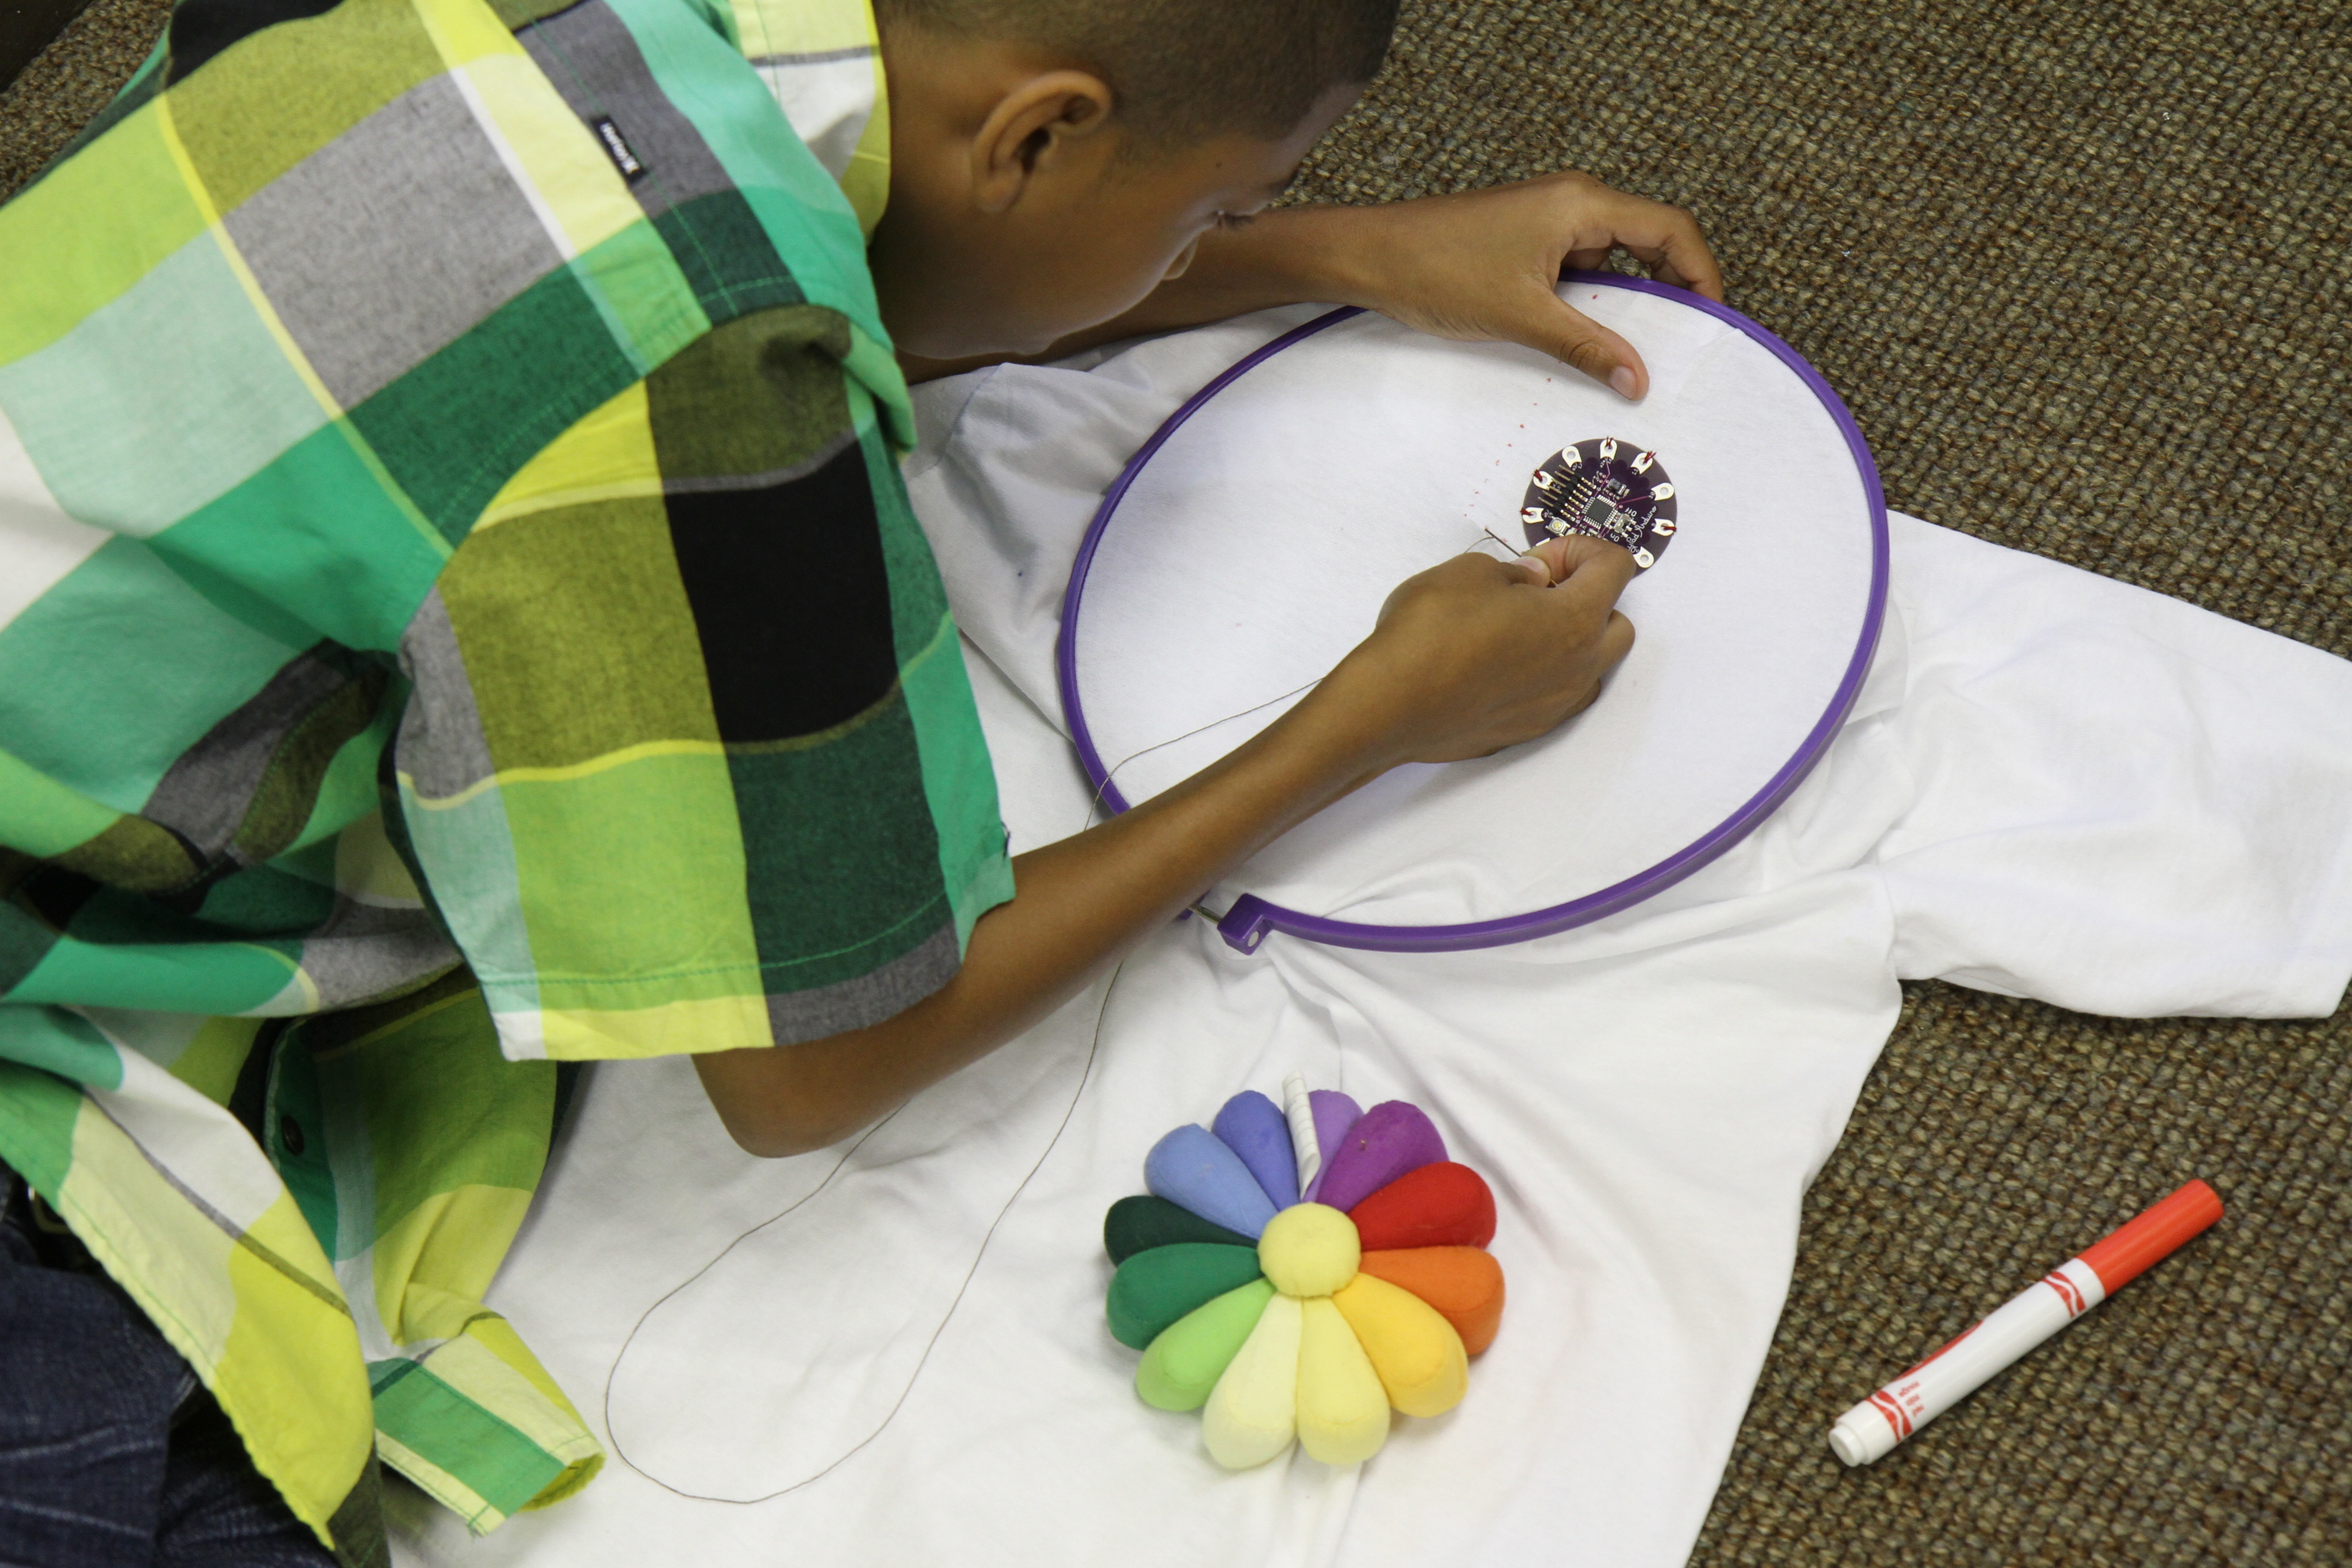 young boy sewing e-textiles with LilyPad